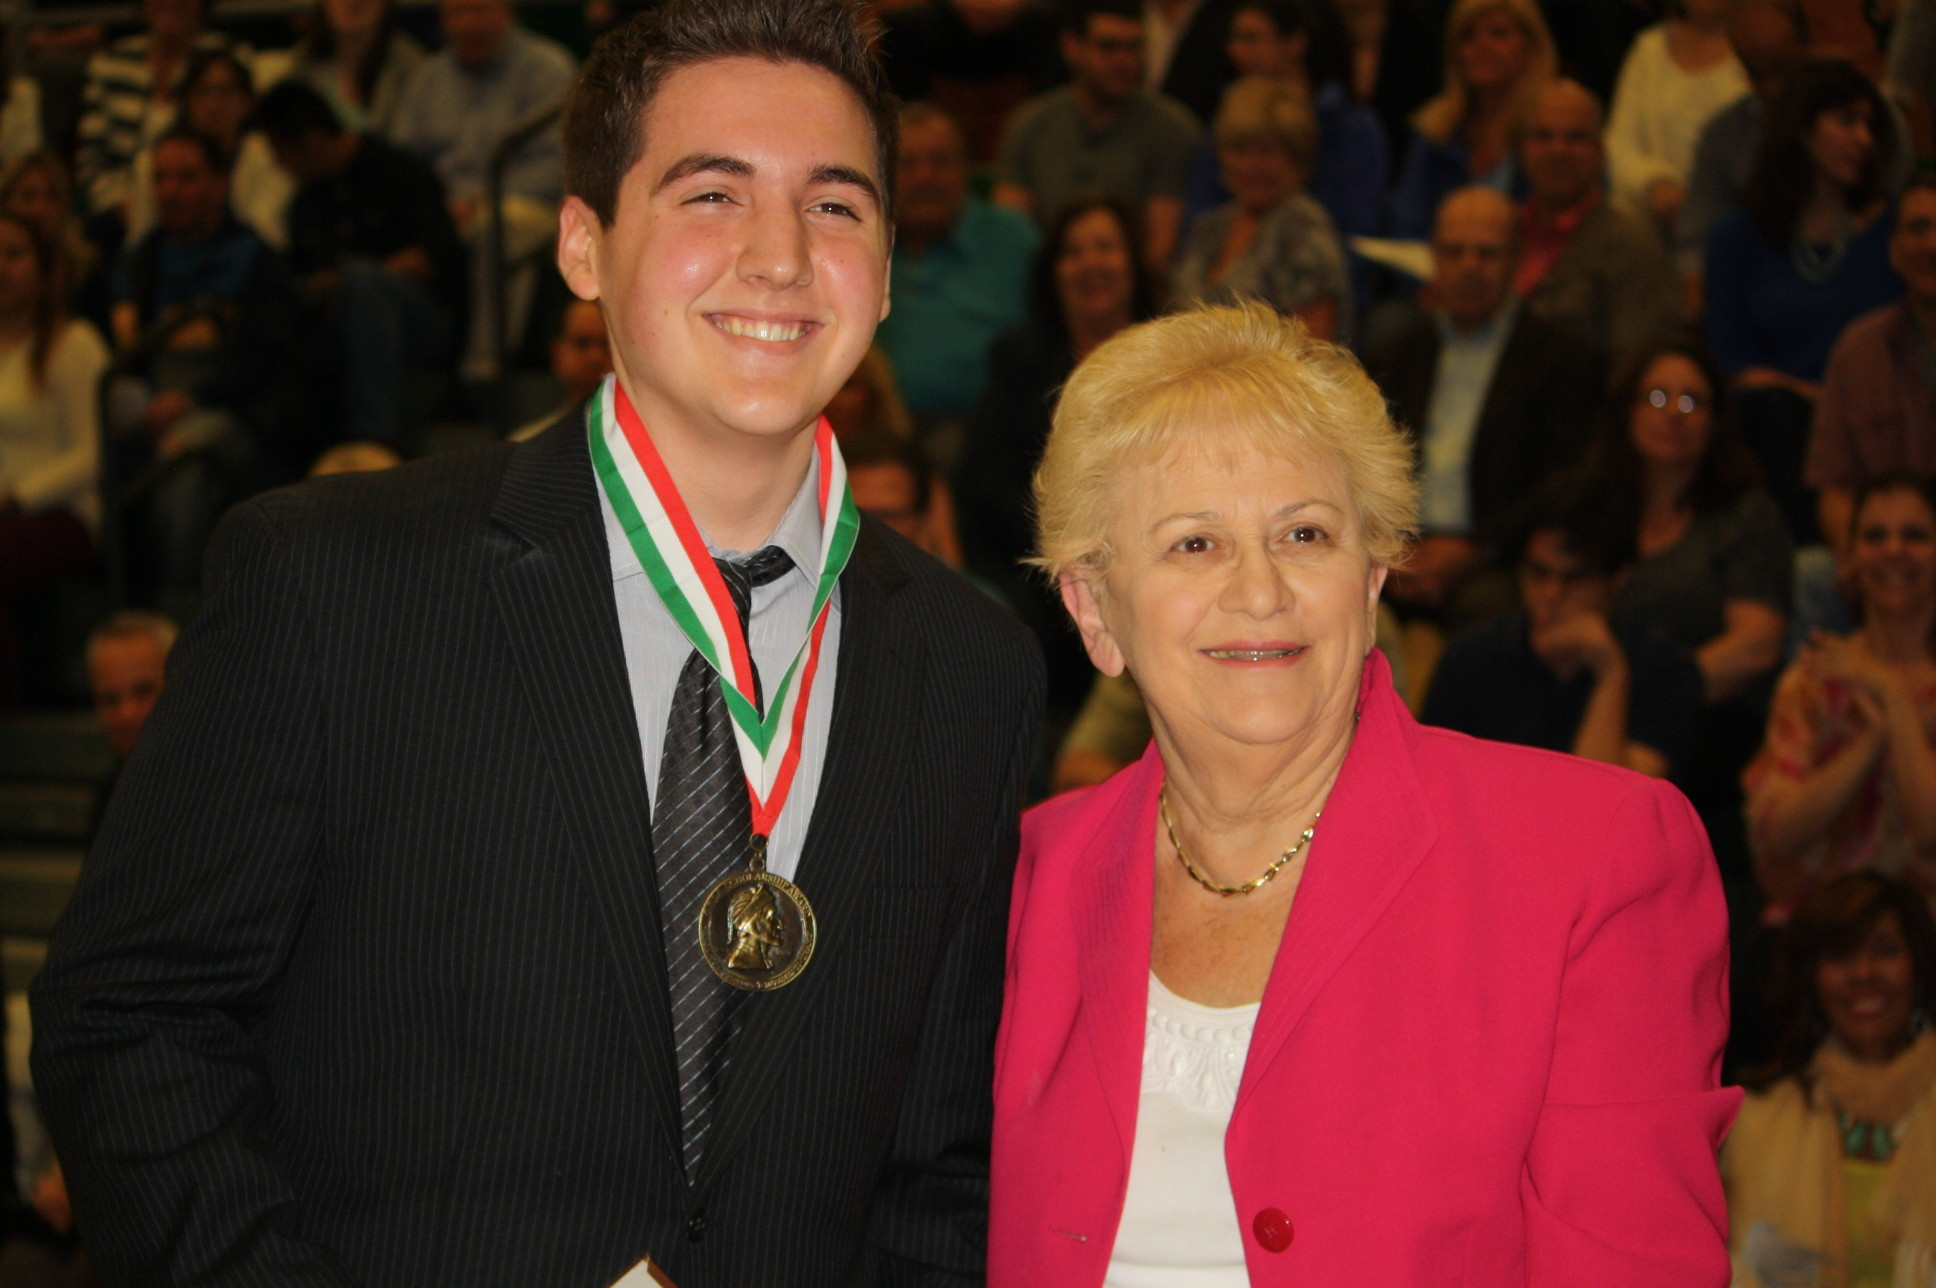 Matthew Shearer received the Per Sempre Ladies 2344A Order Sons of Italy in America Scholarship Dante Award, presented by Immediate Past President Mildred Mancusi.